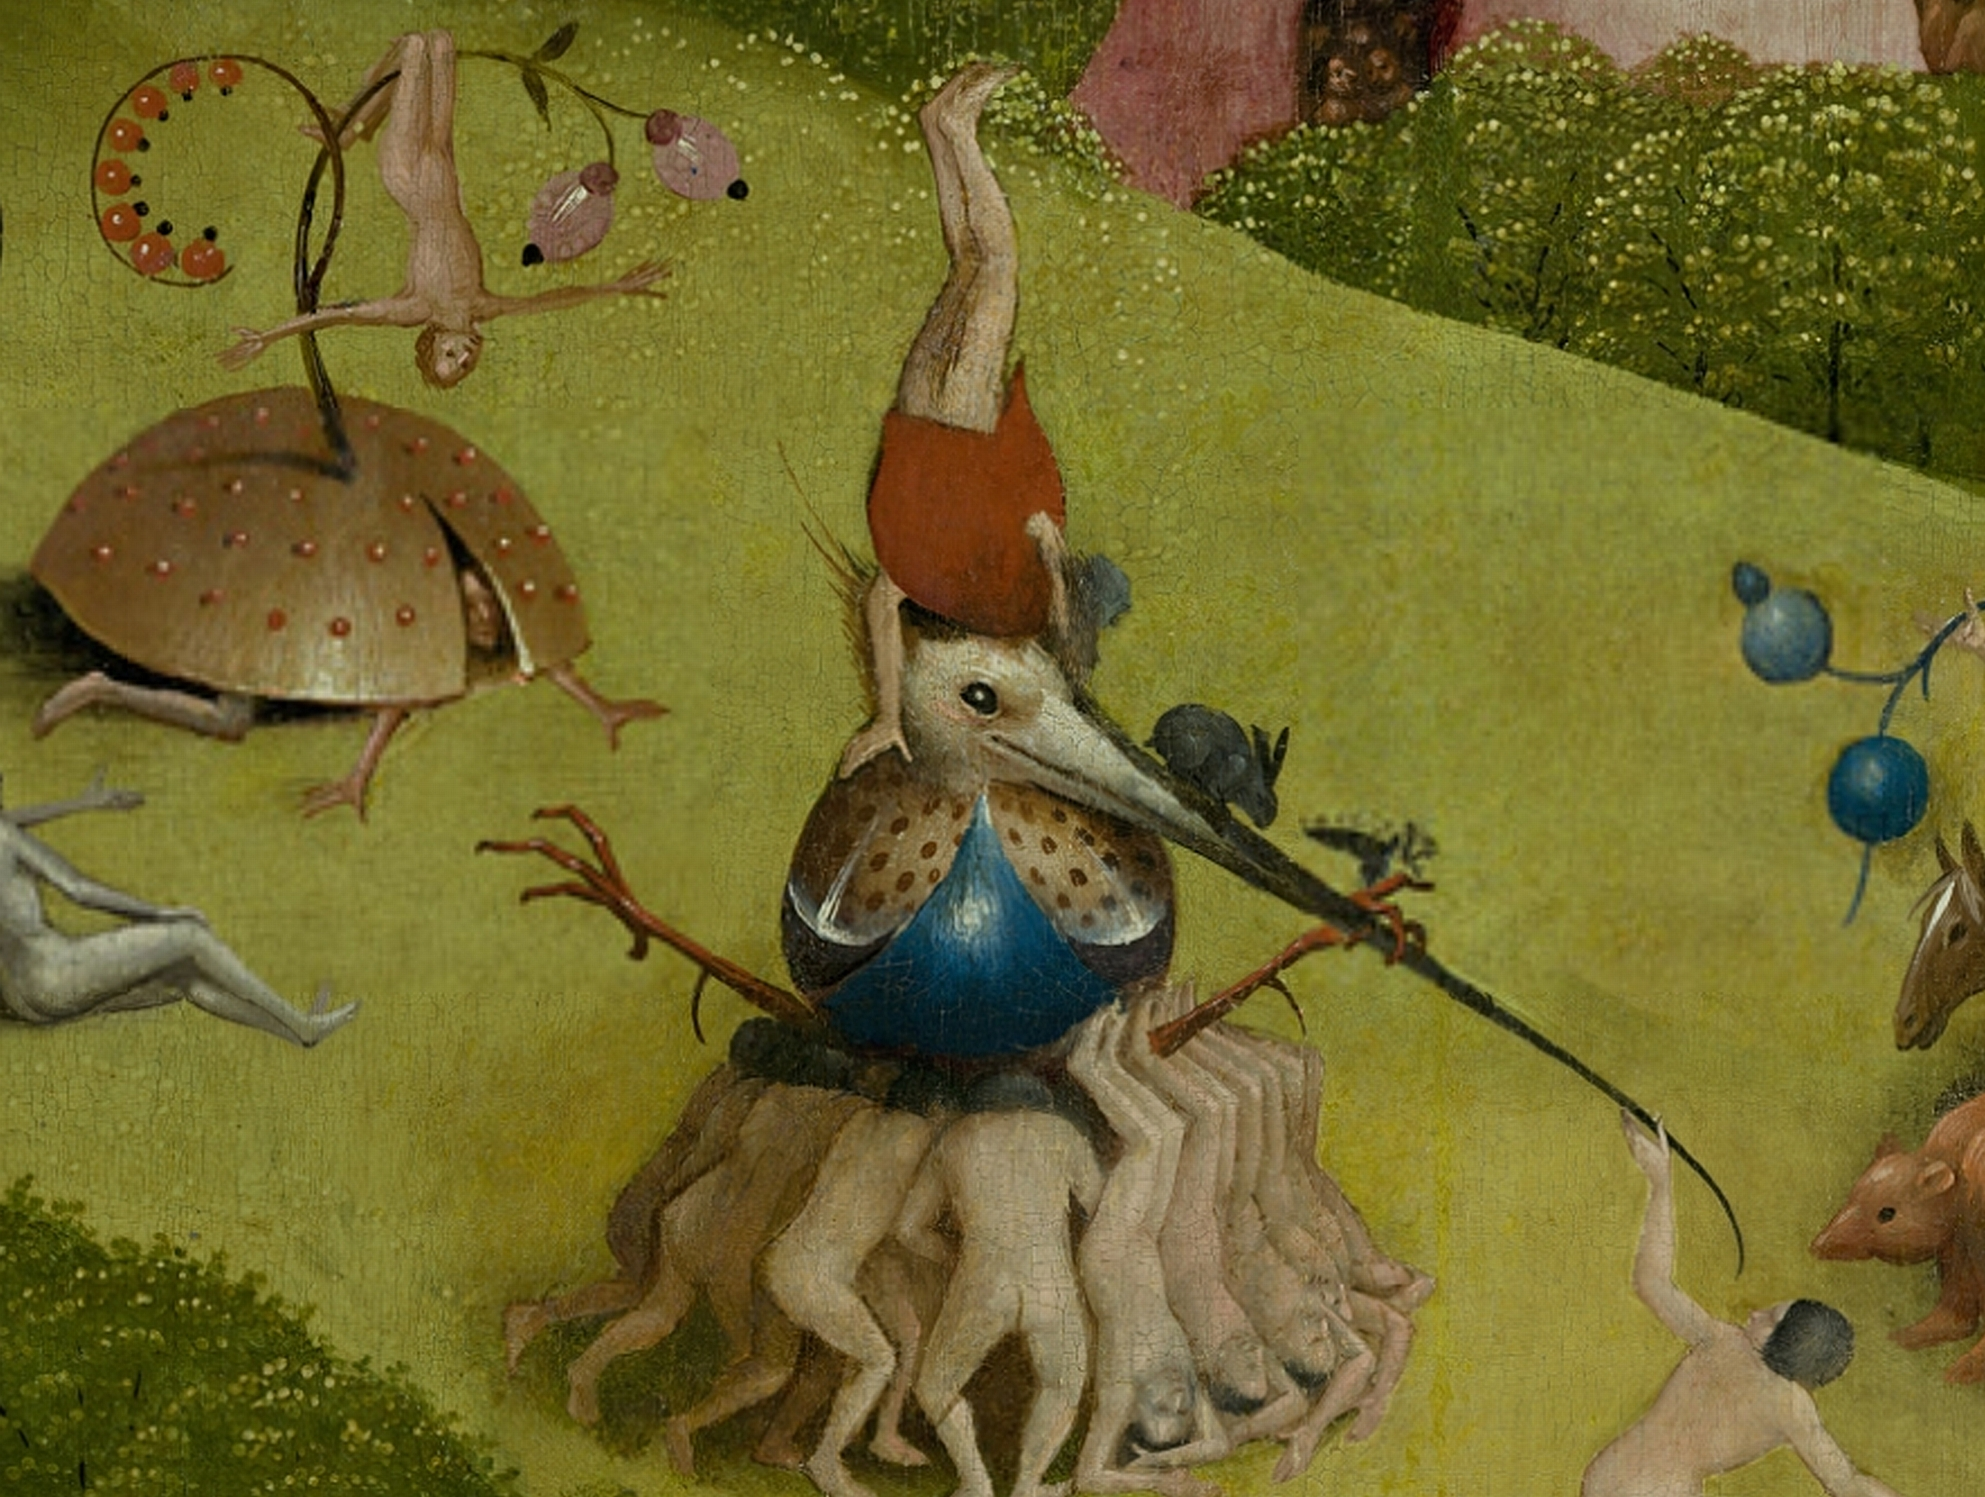 Bosch,_Hieronymus_-_The_Garden_of_Earthly_Delights,_central_panel_-_Detail_Men_upside_down_(upper_left)